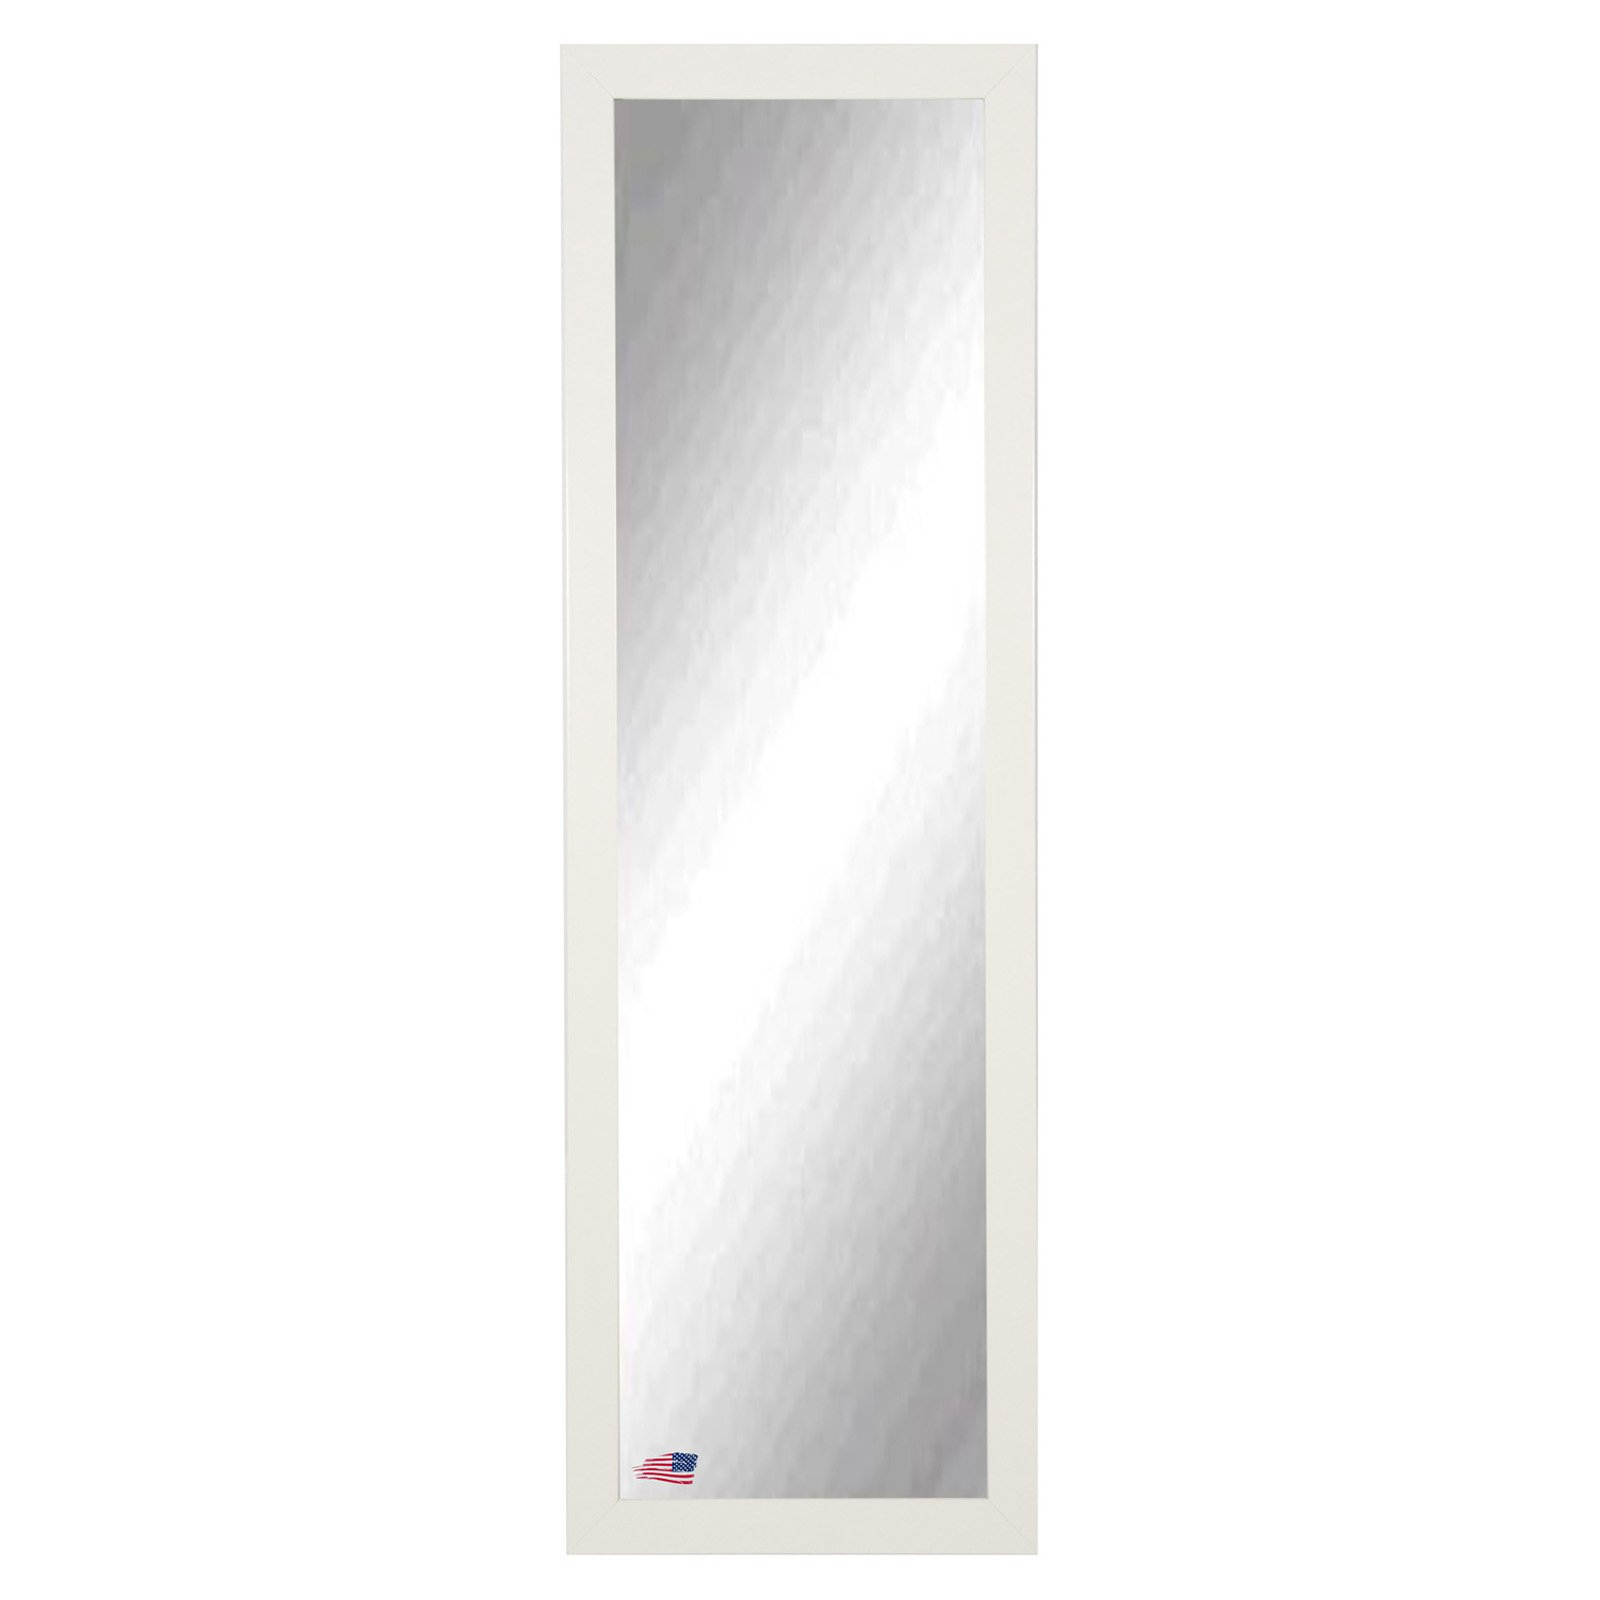 Full Body Wall Mirrors Intended For Most Current Rayne Mirrors Glossy White Full Length Body Wall Mirror (View 16 of 20)